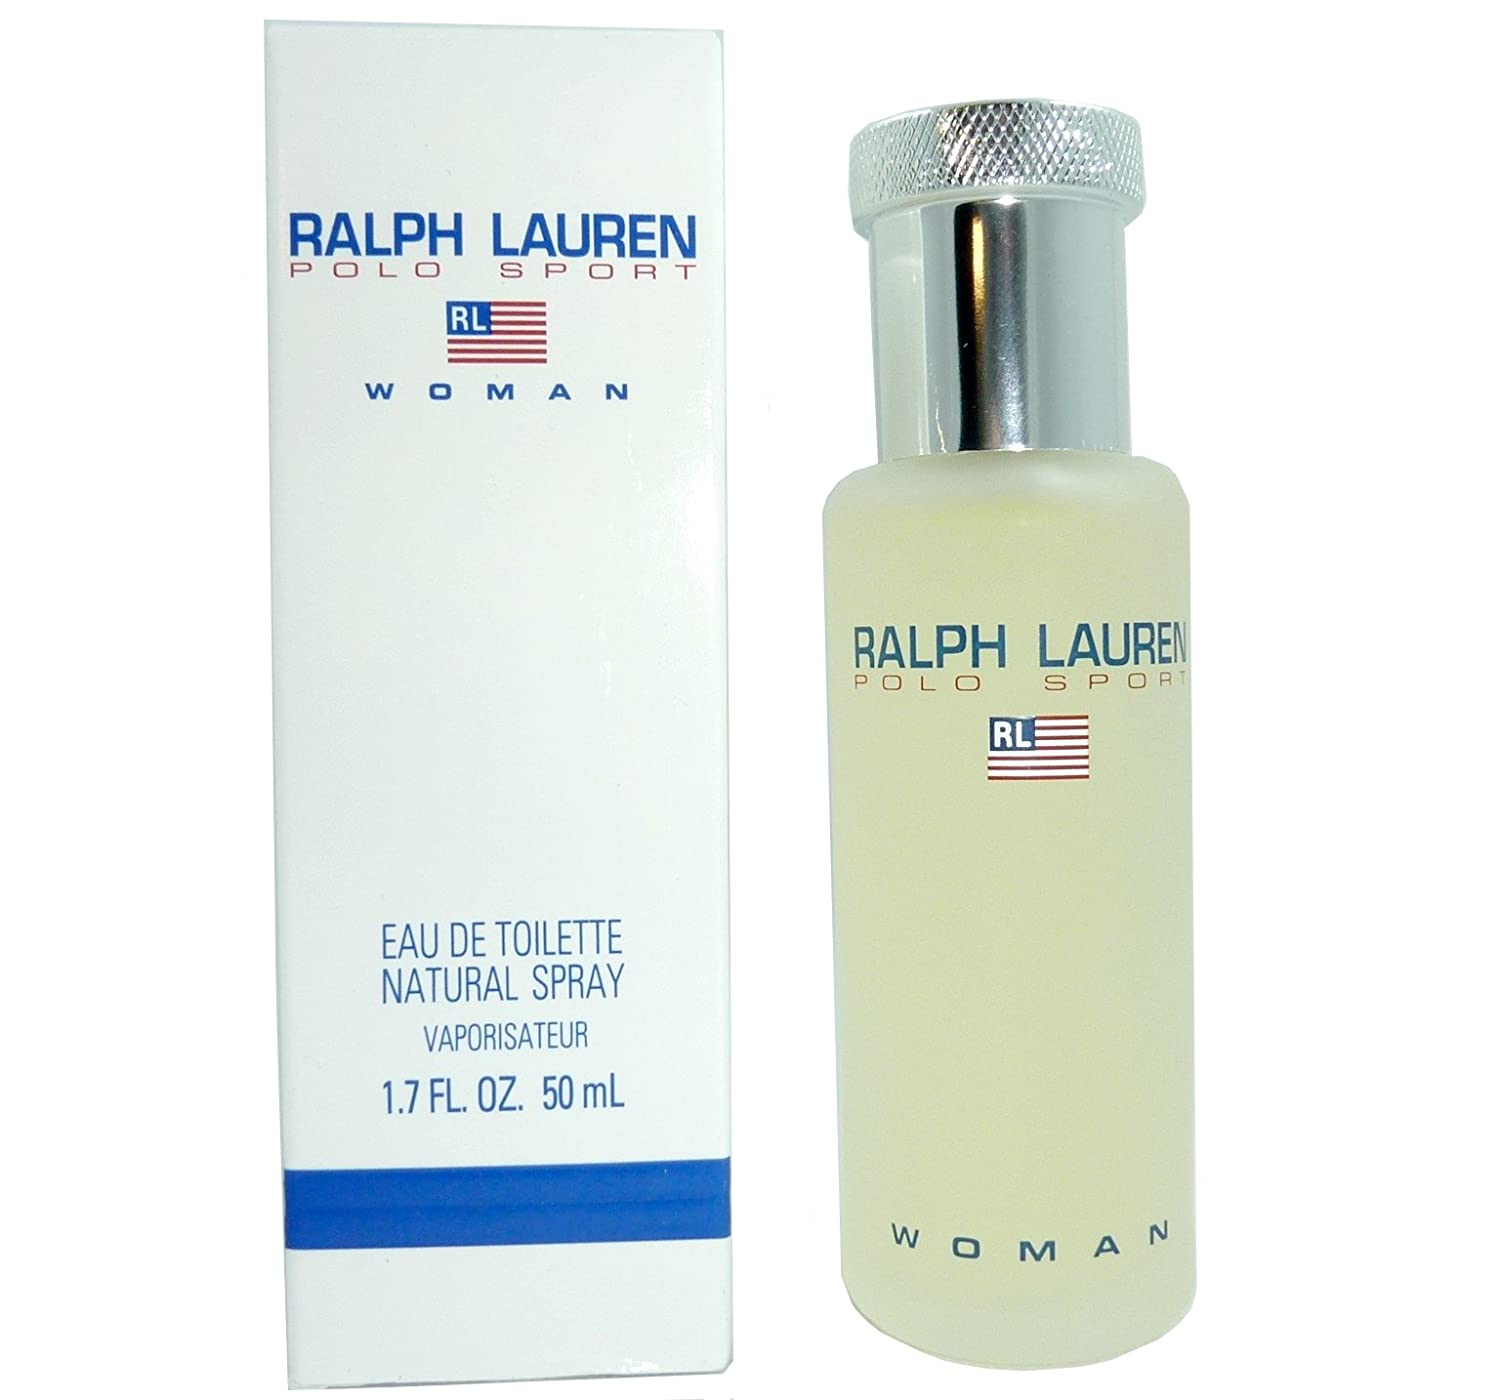 Ralph Lauren Polo Sport Eau de Toilette 50ml Vaporizador: Amazon ...